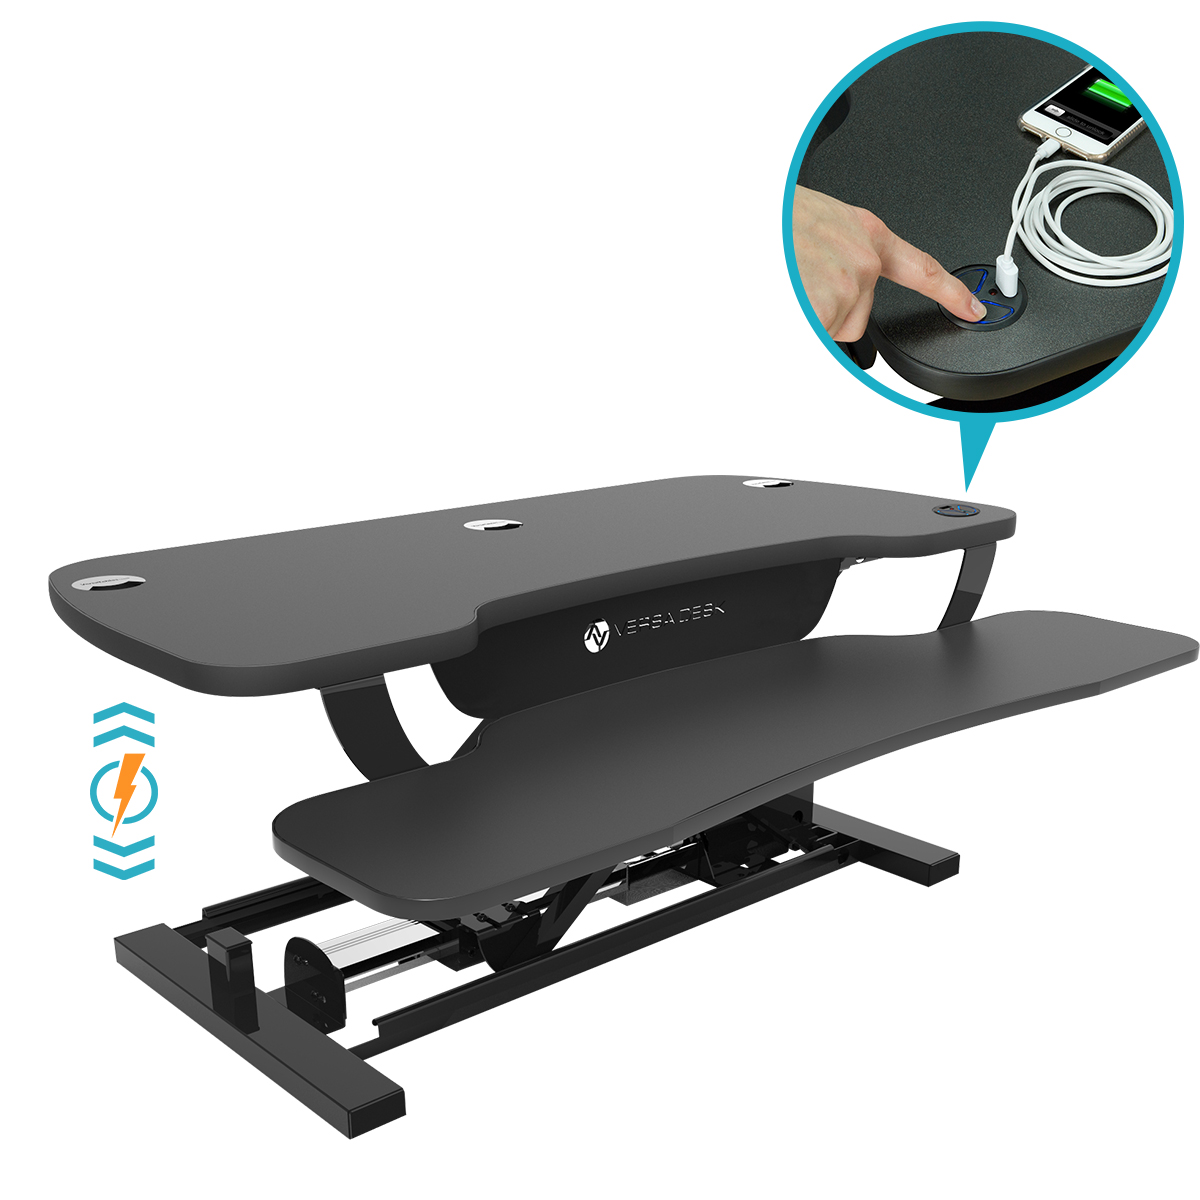 Choose a clean looking Black Matrix Surface for your Power Pro Plus Sit Stand Desk